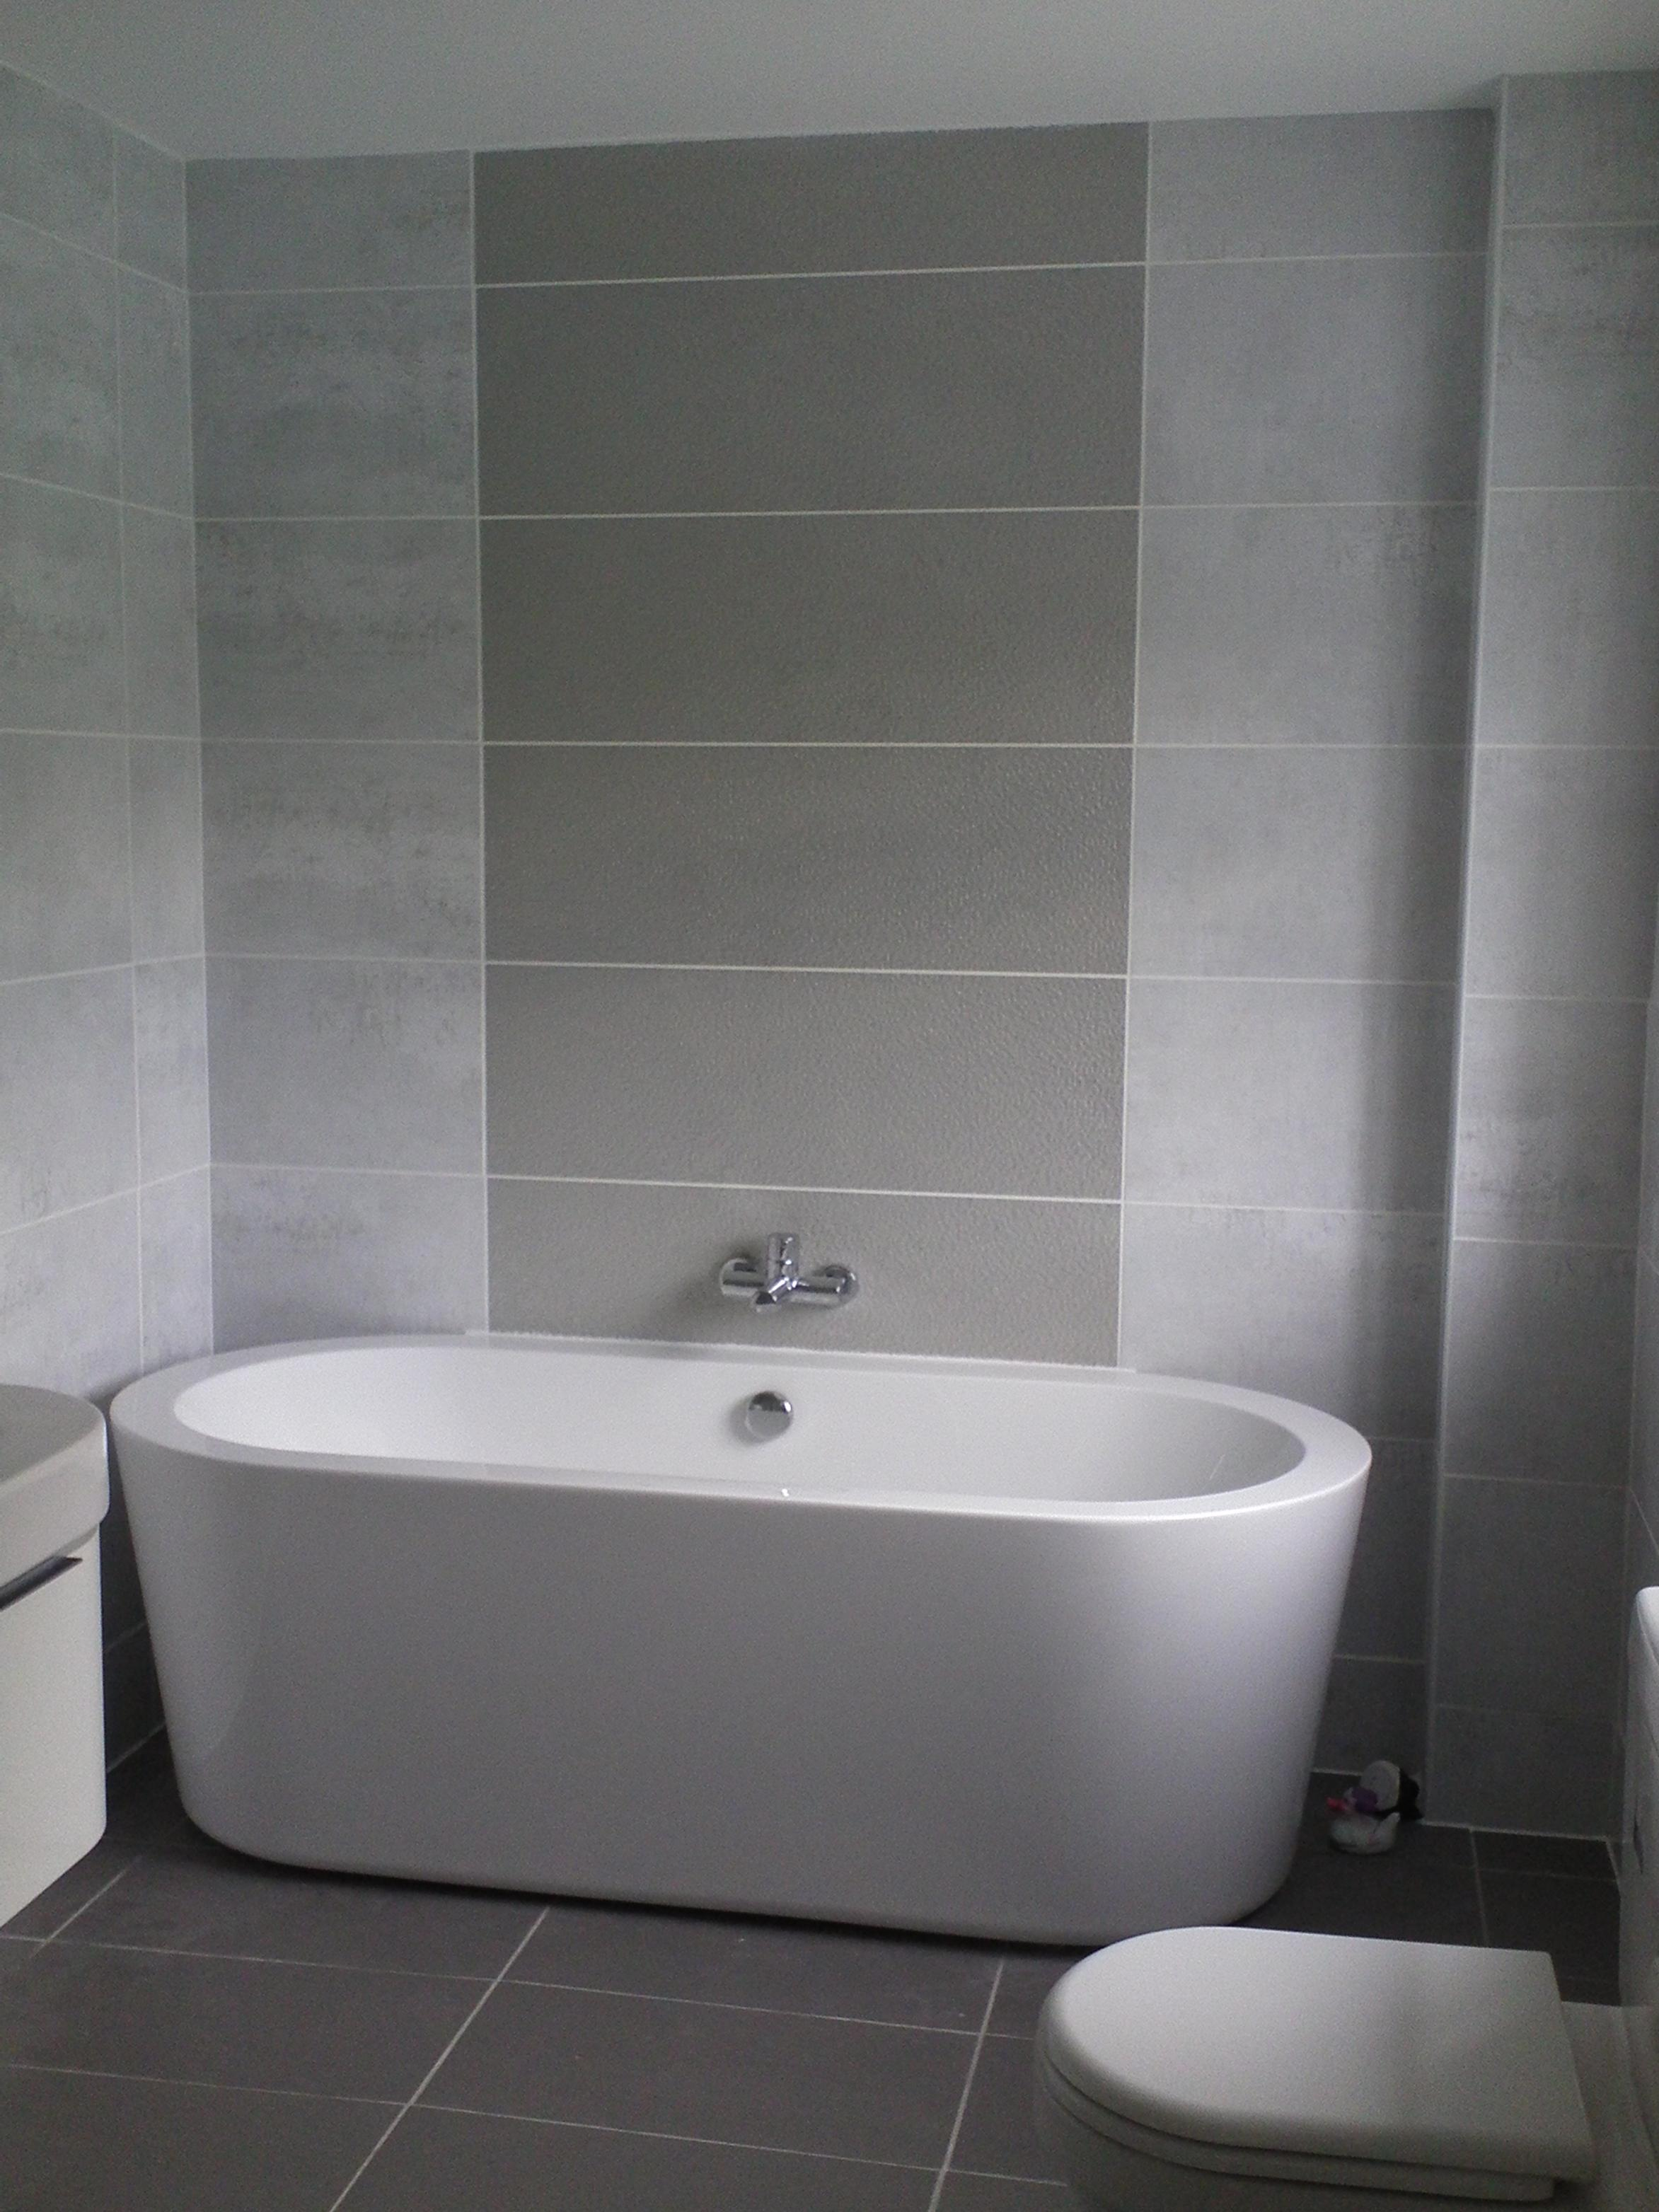 25 grey wall tiles for bathroom ideas and pictures for Bathroom ideas gray tile